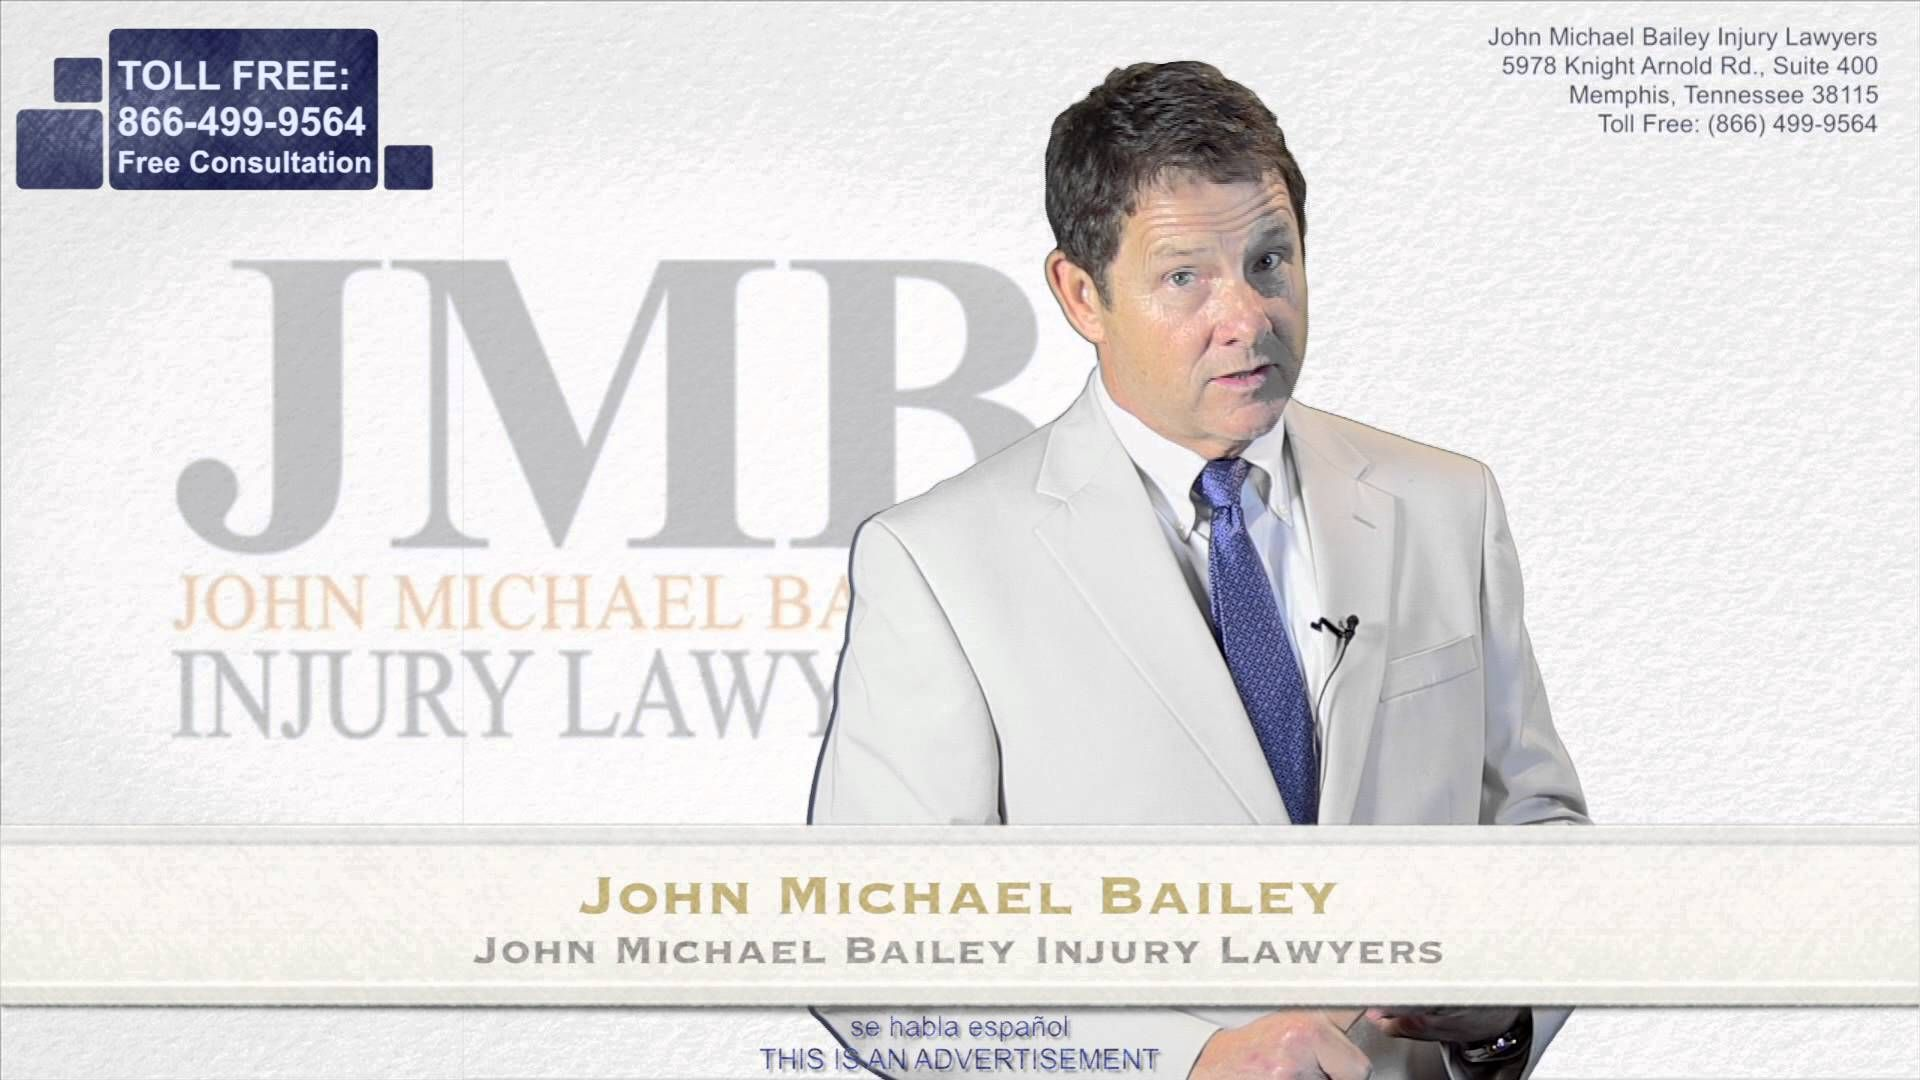 Pin By John Michael Bailey On John Michael Bailey Injury Lawyers